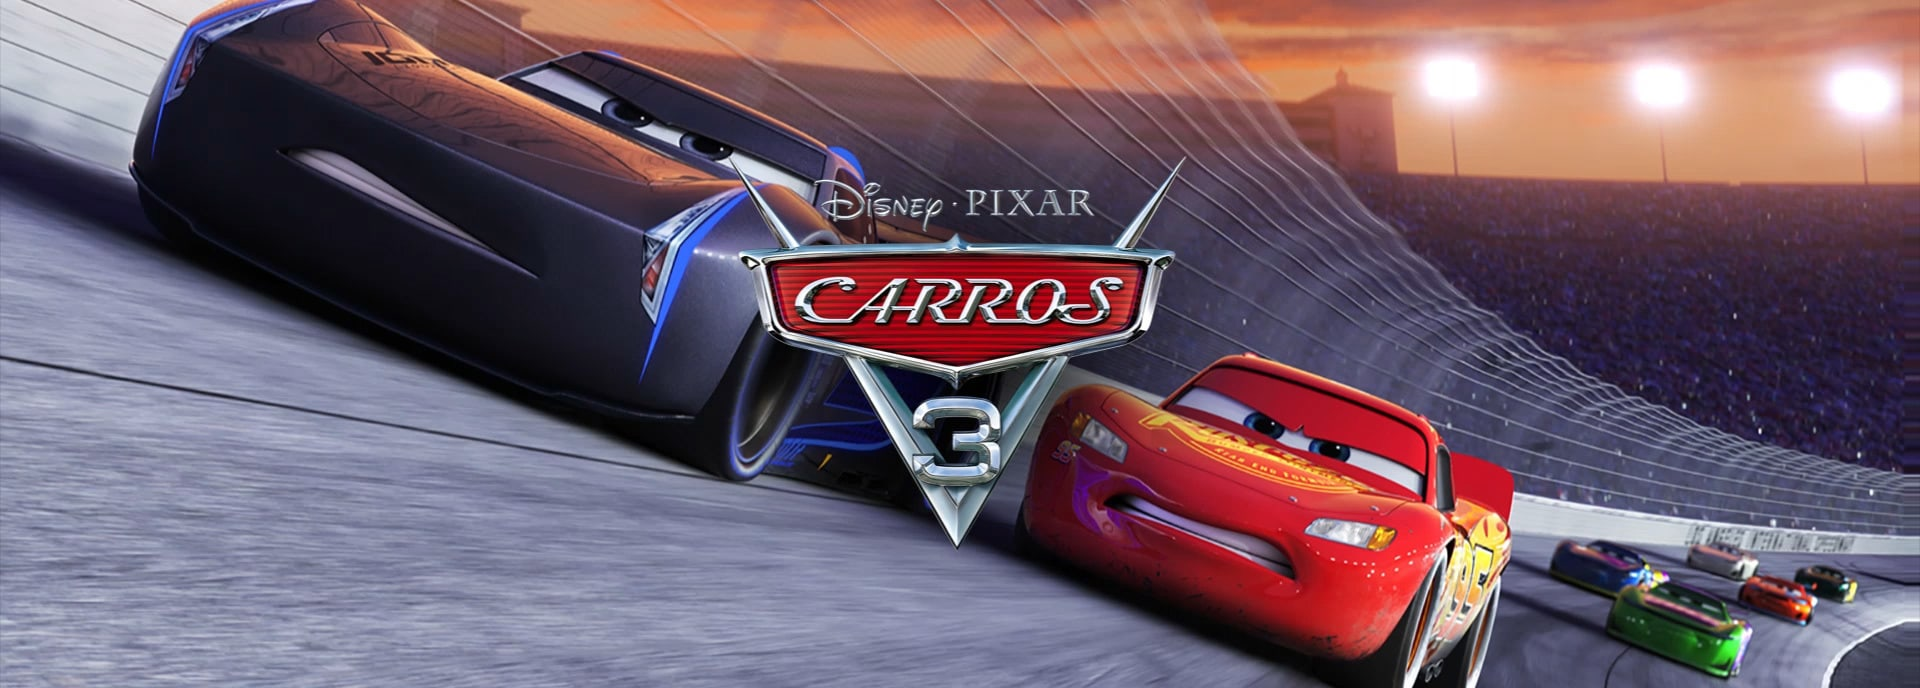 PT - Cars 3 Flex Hero - Animated